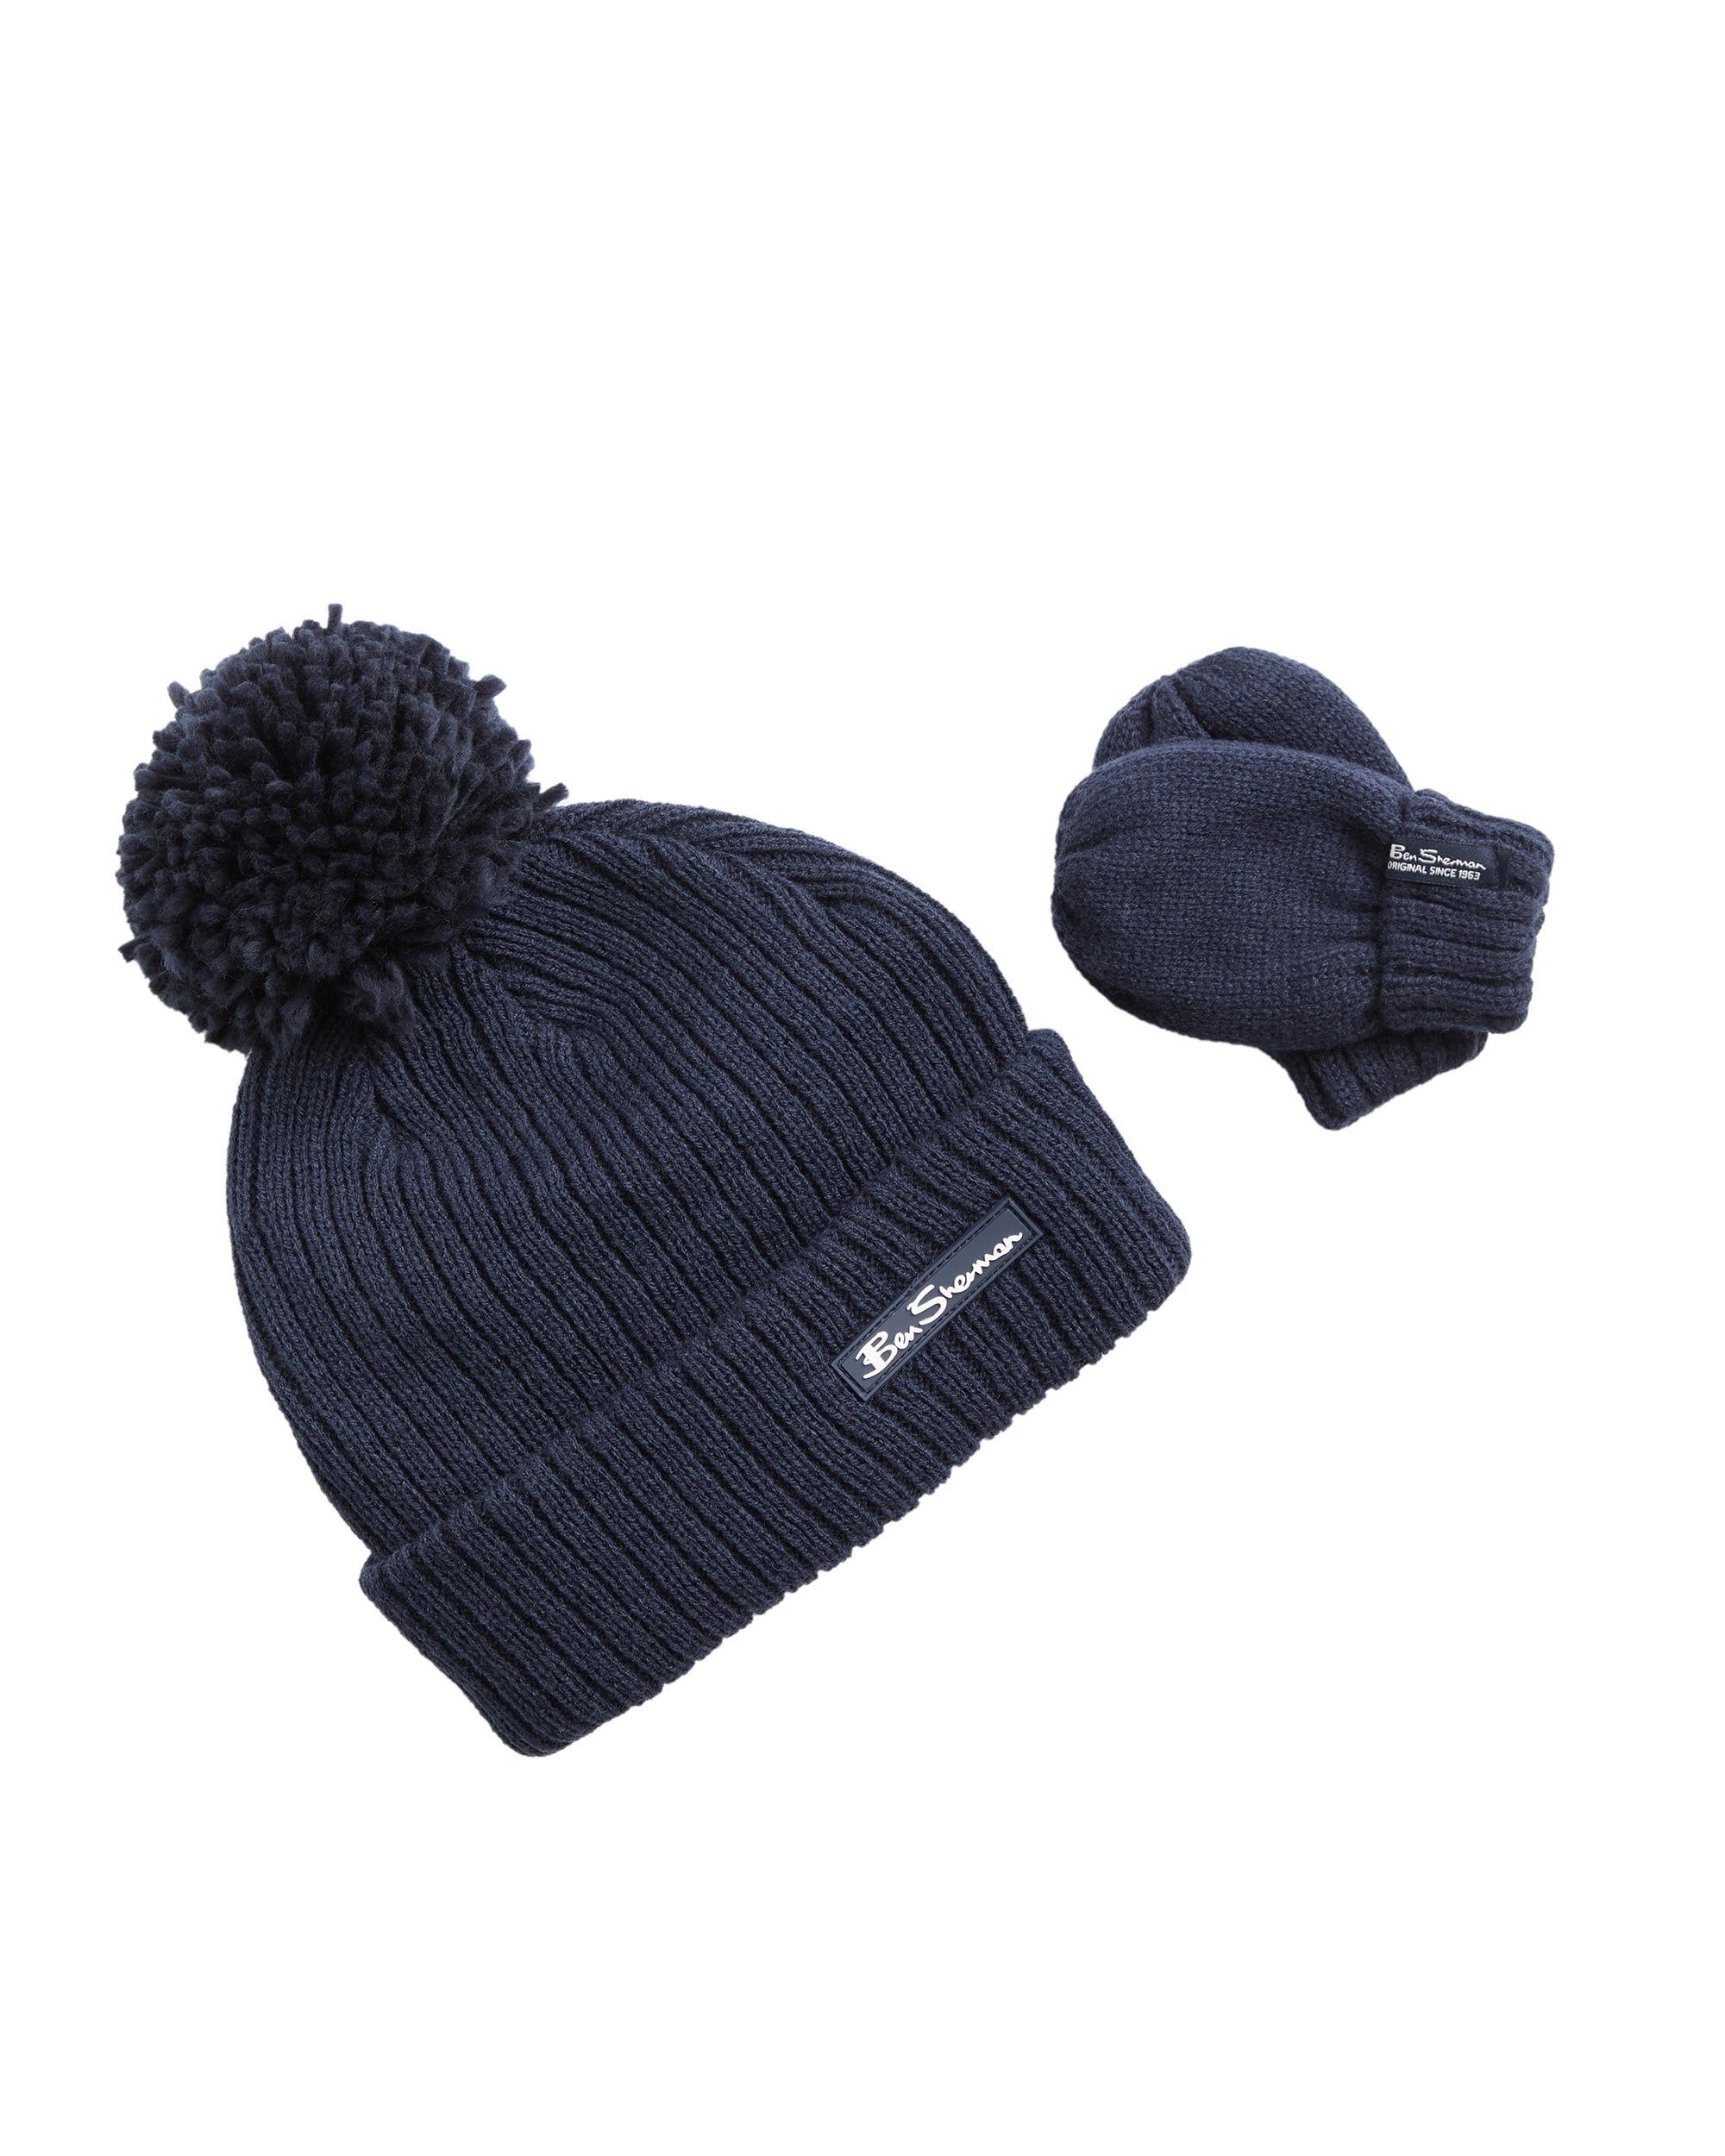 Toddler Knit Hat & Mittens Set - Navy